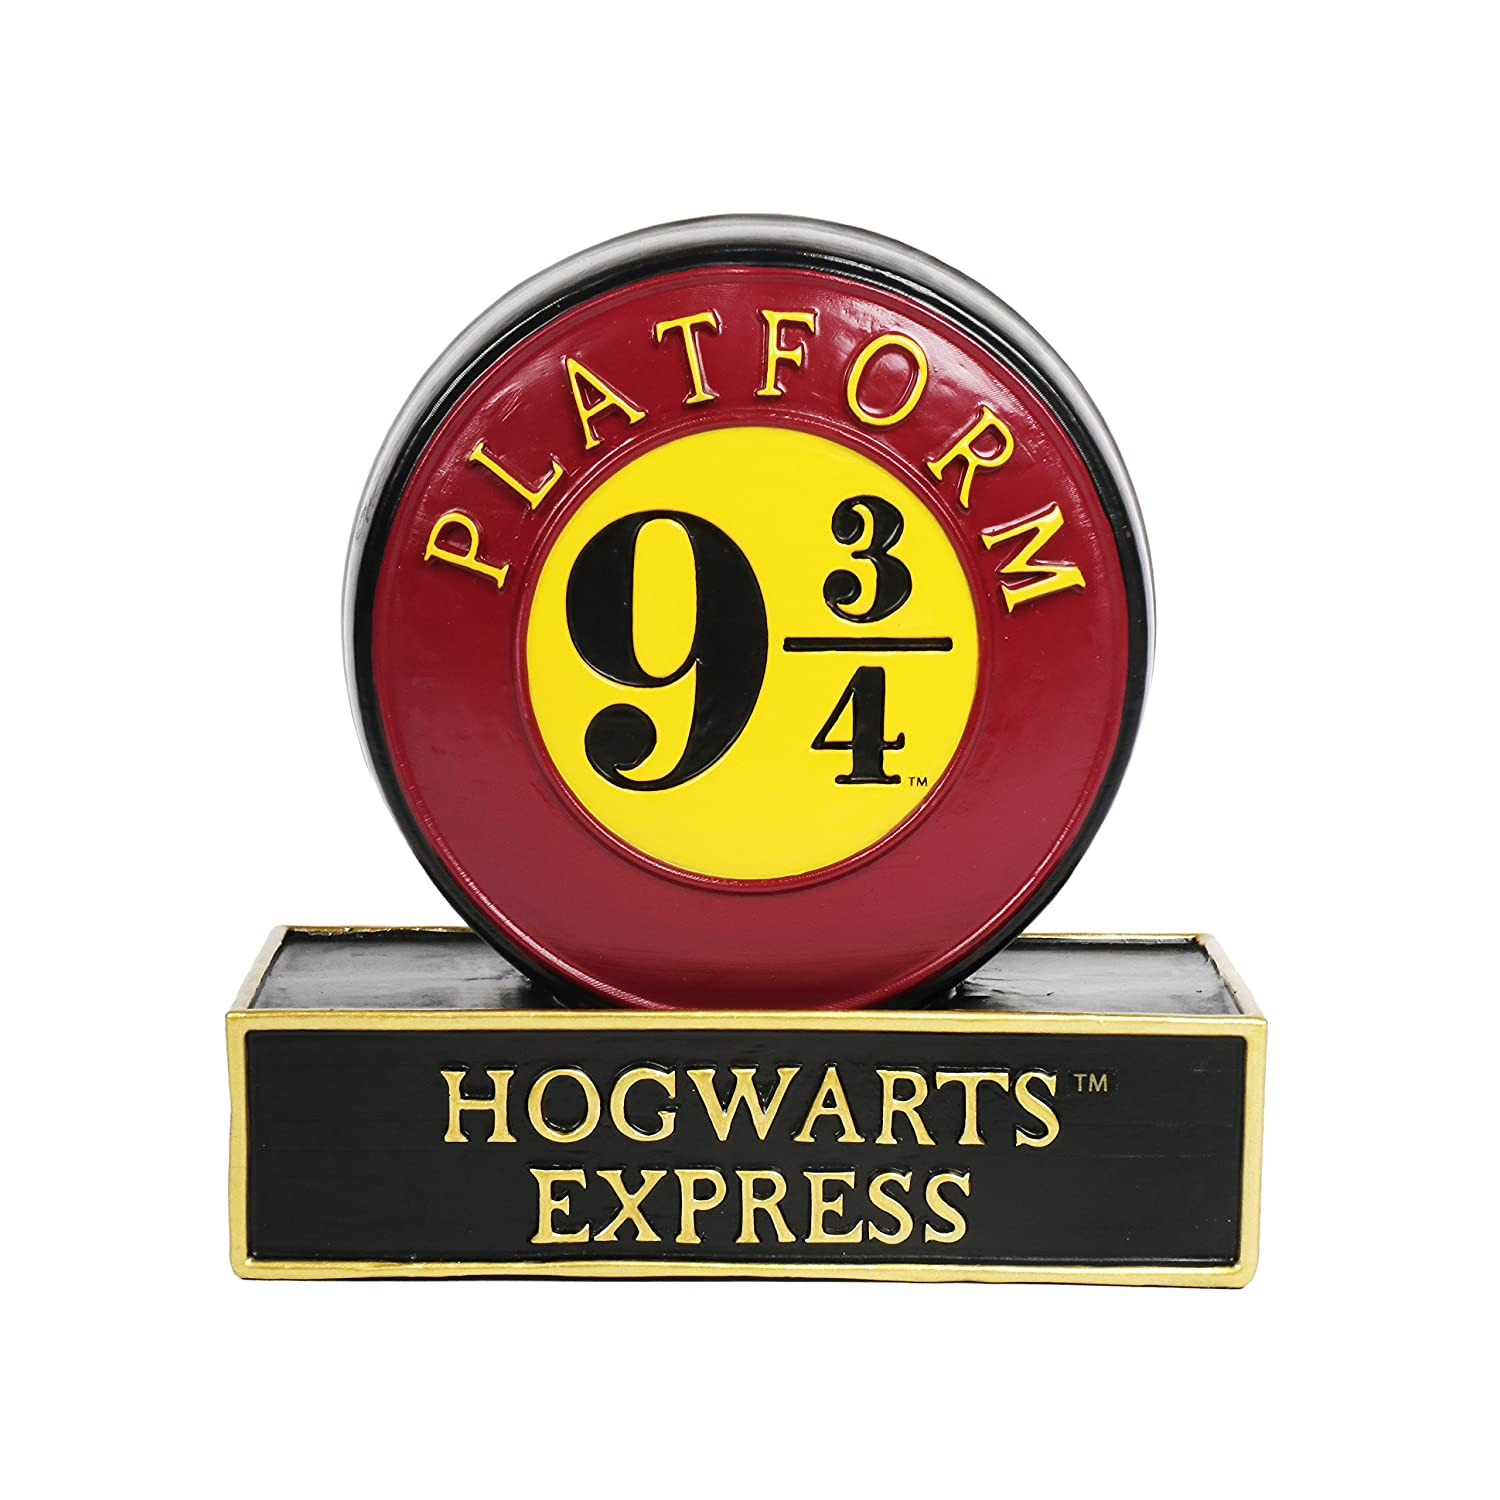 Harry Potter Hogwarts Express Coin Bank for Kids FAB Starpoint FR2961